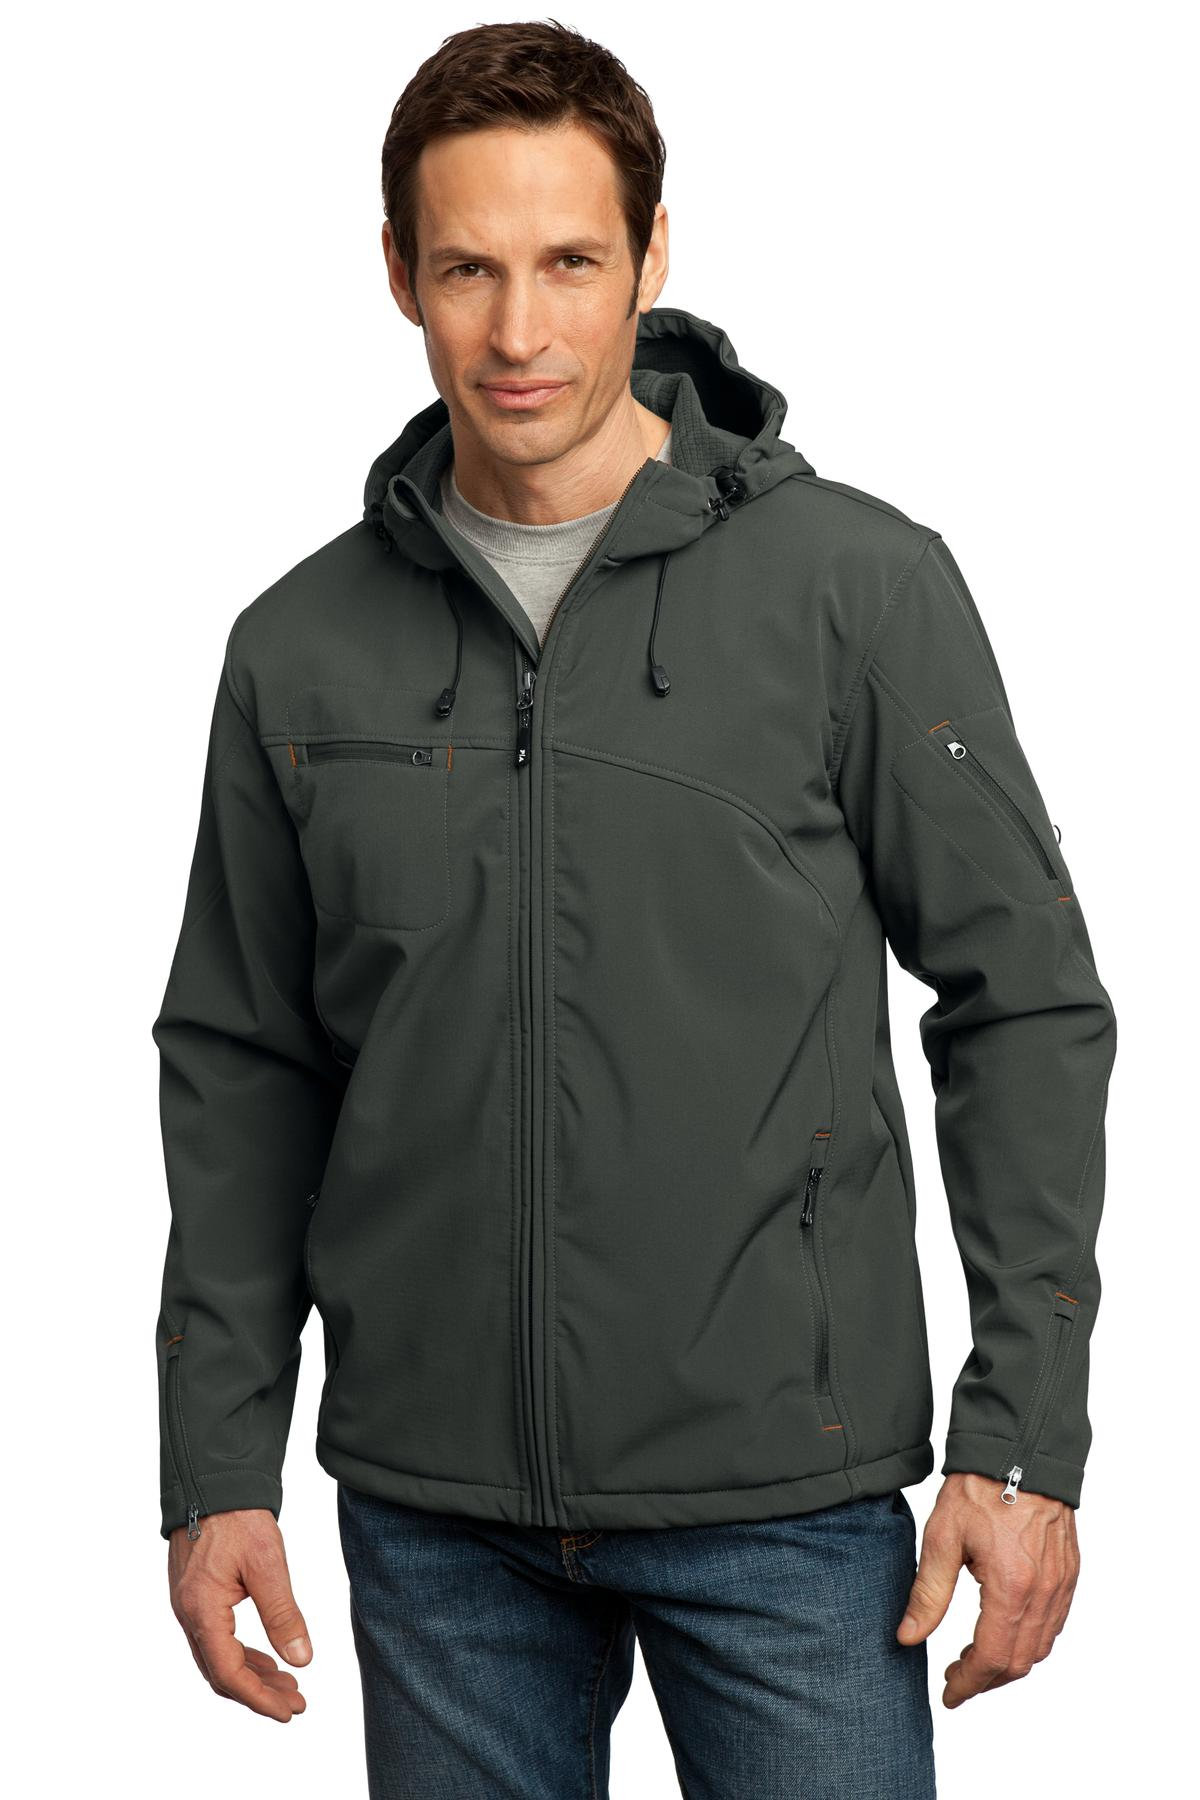 Port Authority ®  Textured Hooded Soft Shell Jacket. J706 - Mineral Green/ Soft Orange